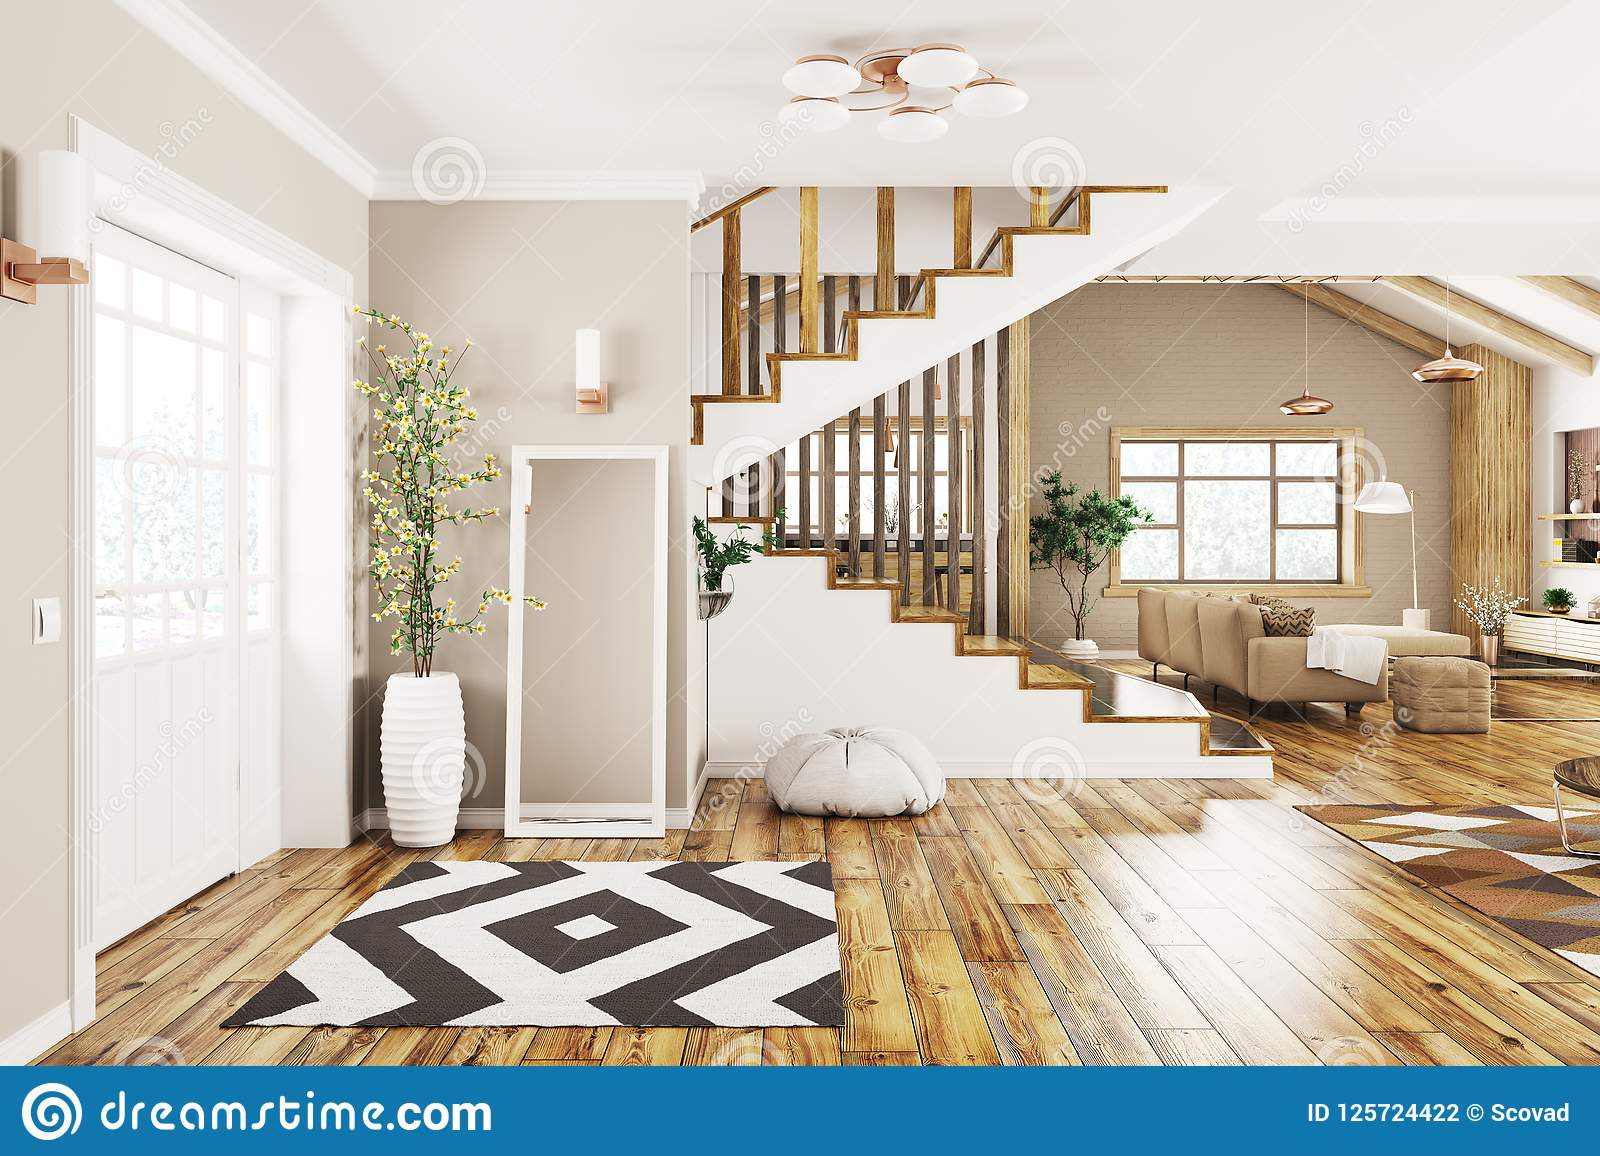 Modern interior design of house hall living room with staircase 3d rendering